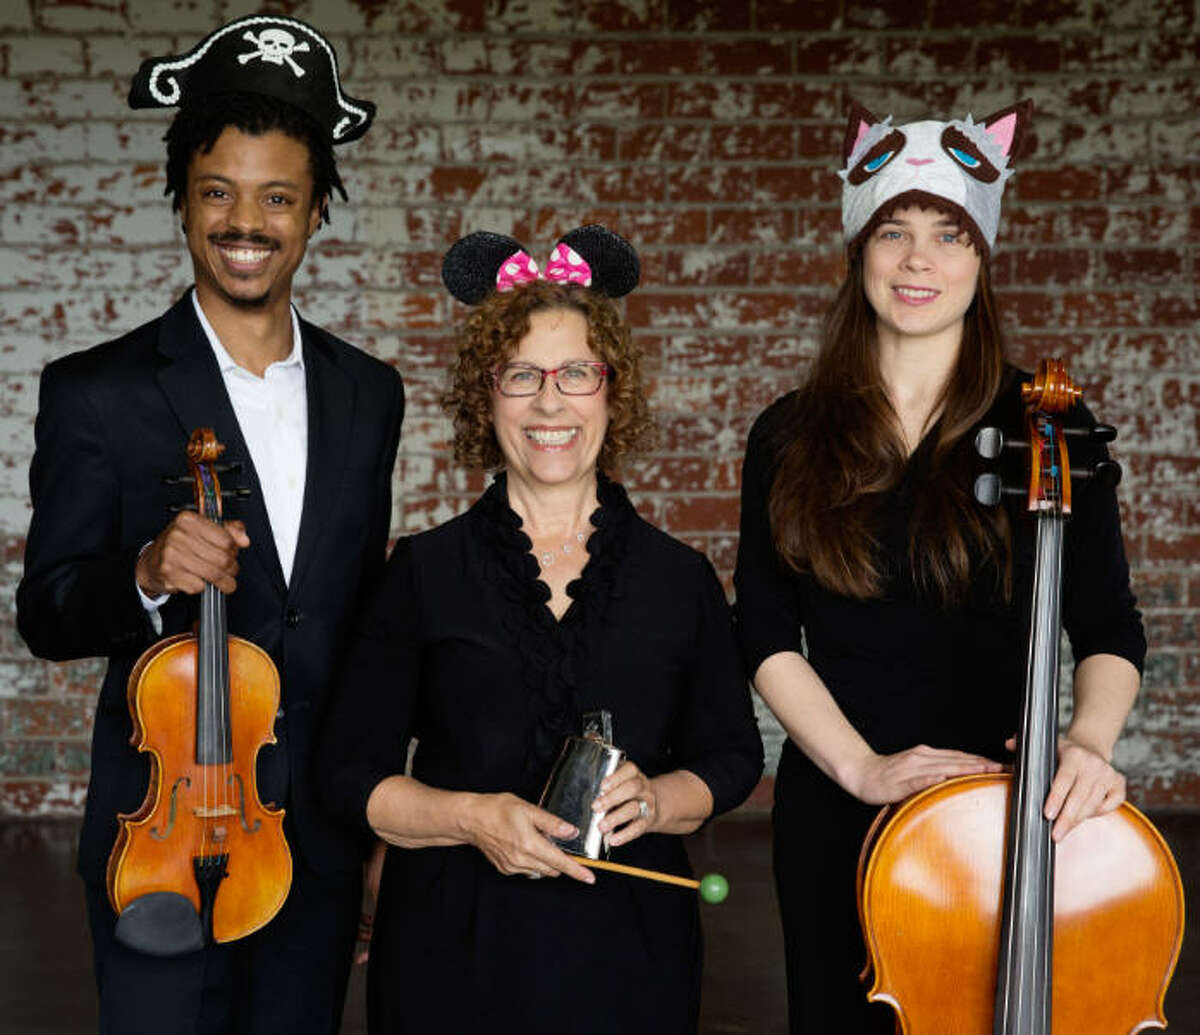 A tradition returns this Halloween season with the Fort Bend Symphony's free performance of Hauntcert at Sugar Land Town Square, Texas 6 at U.S. 59, Saturday, Oct. 29, at 2 p.m. From left are Jordon Nickerson, Andrea Cope and Katherine Leskin.